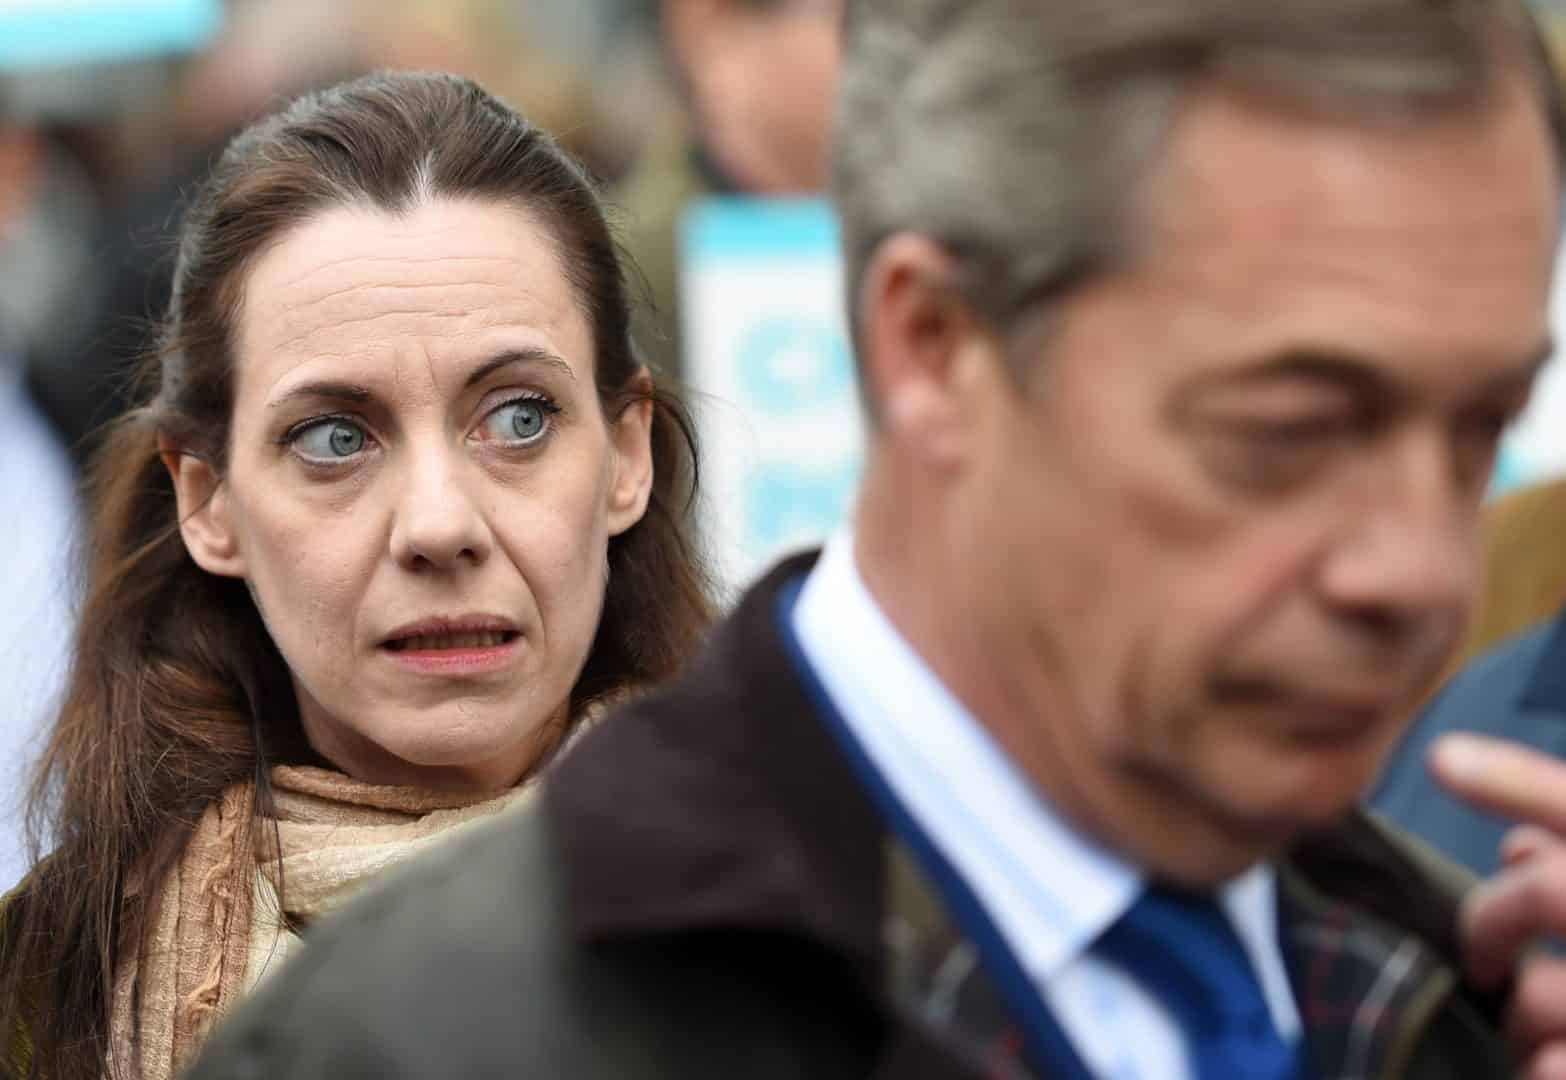 Annunziata Rees-Mogg and Nigel Farage (PA)